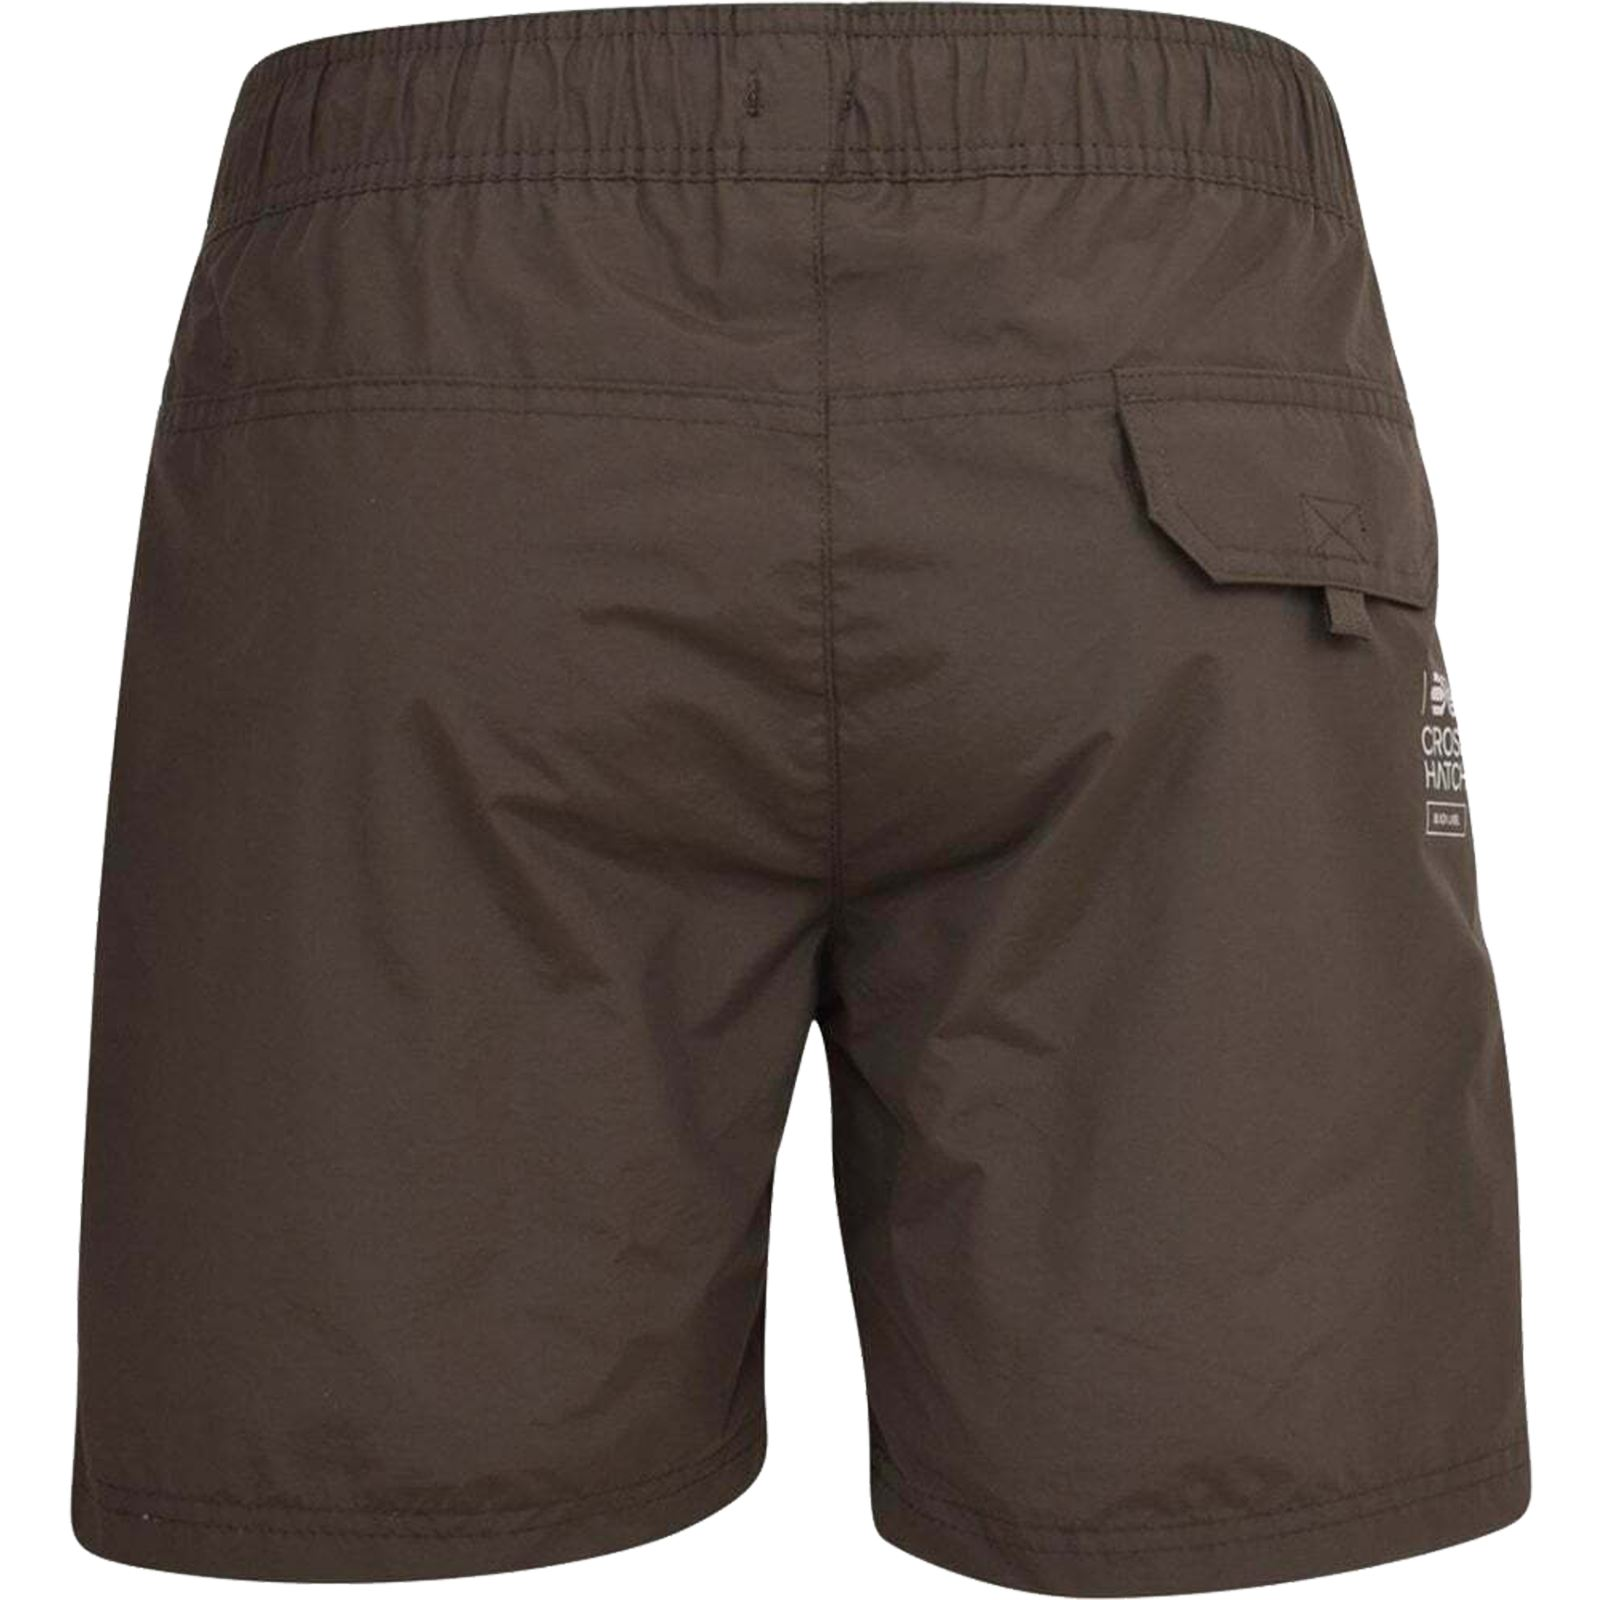 Mens-Crosshatch-Shorts-Drawcord-Mesh-Lined-Designer-Beach-Casual-Swimming-Trunks thumbnail 21